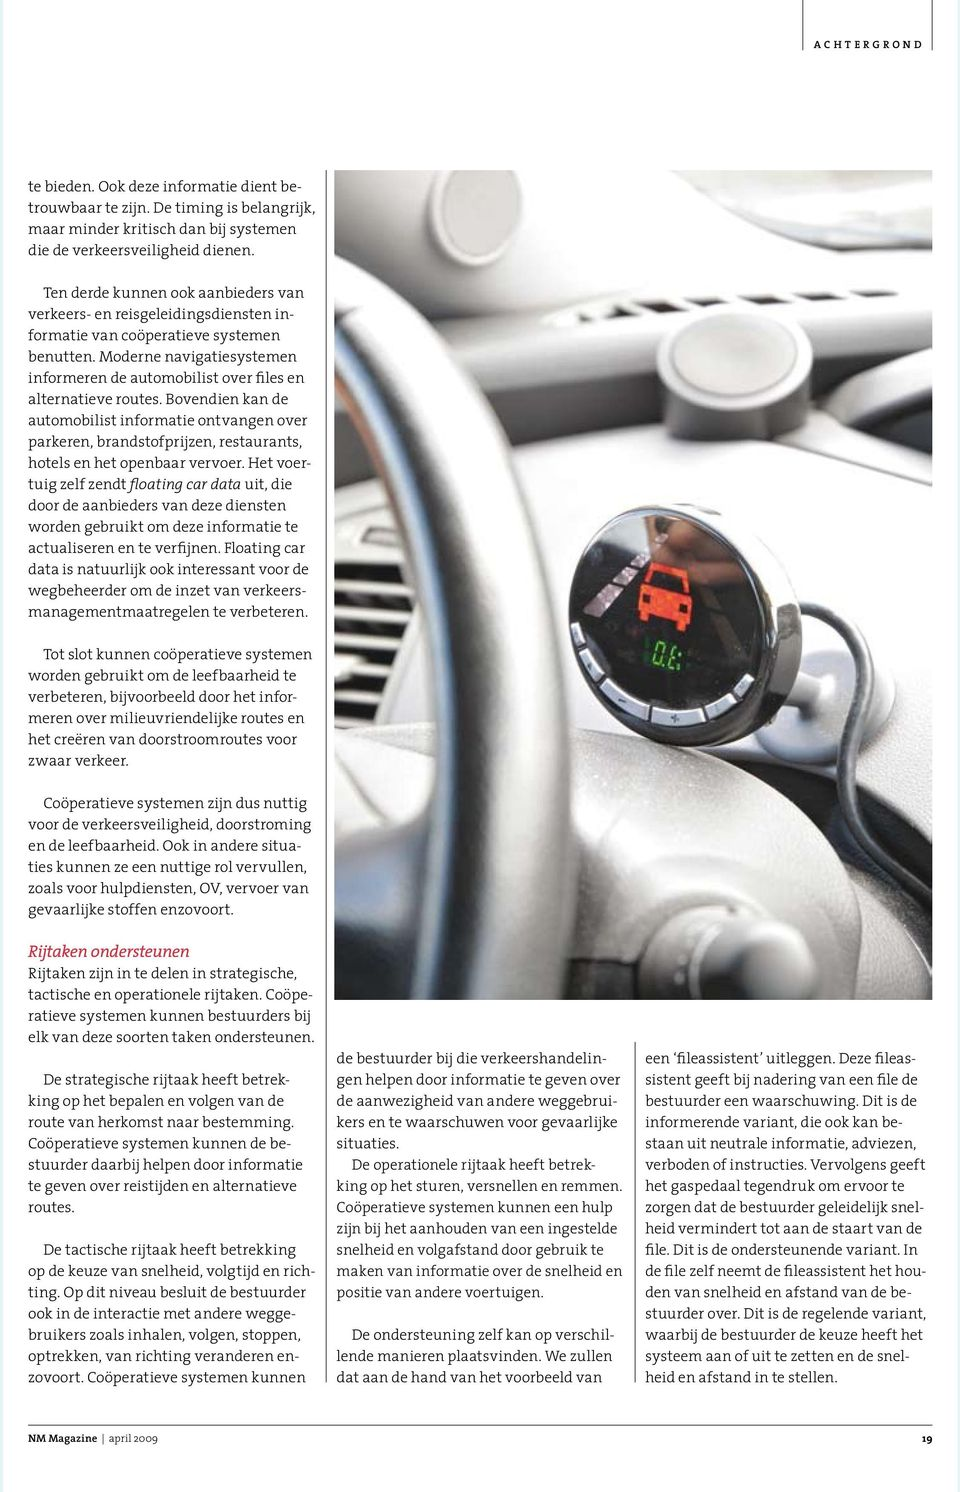 Moderne navigatiesystemen informeren de automobilist over files en alternatieve routes.